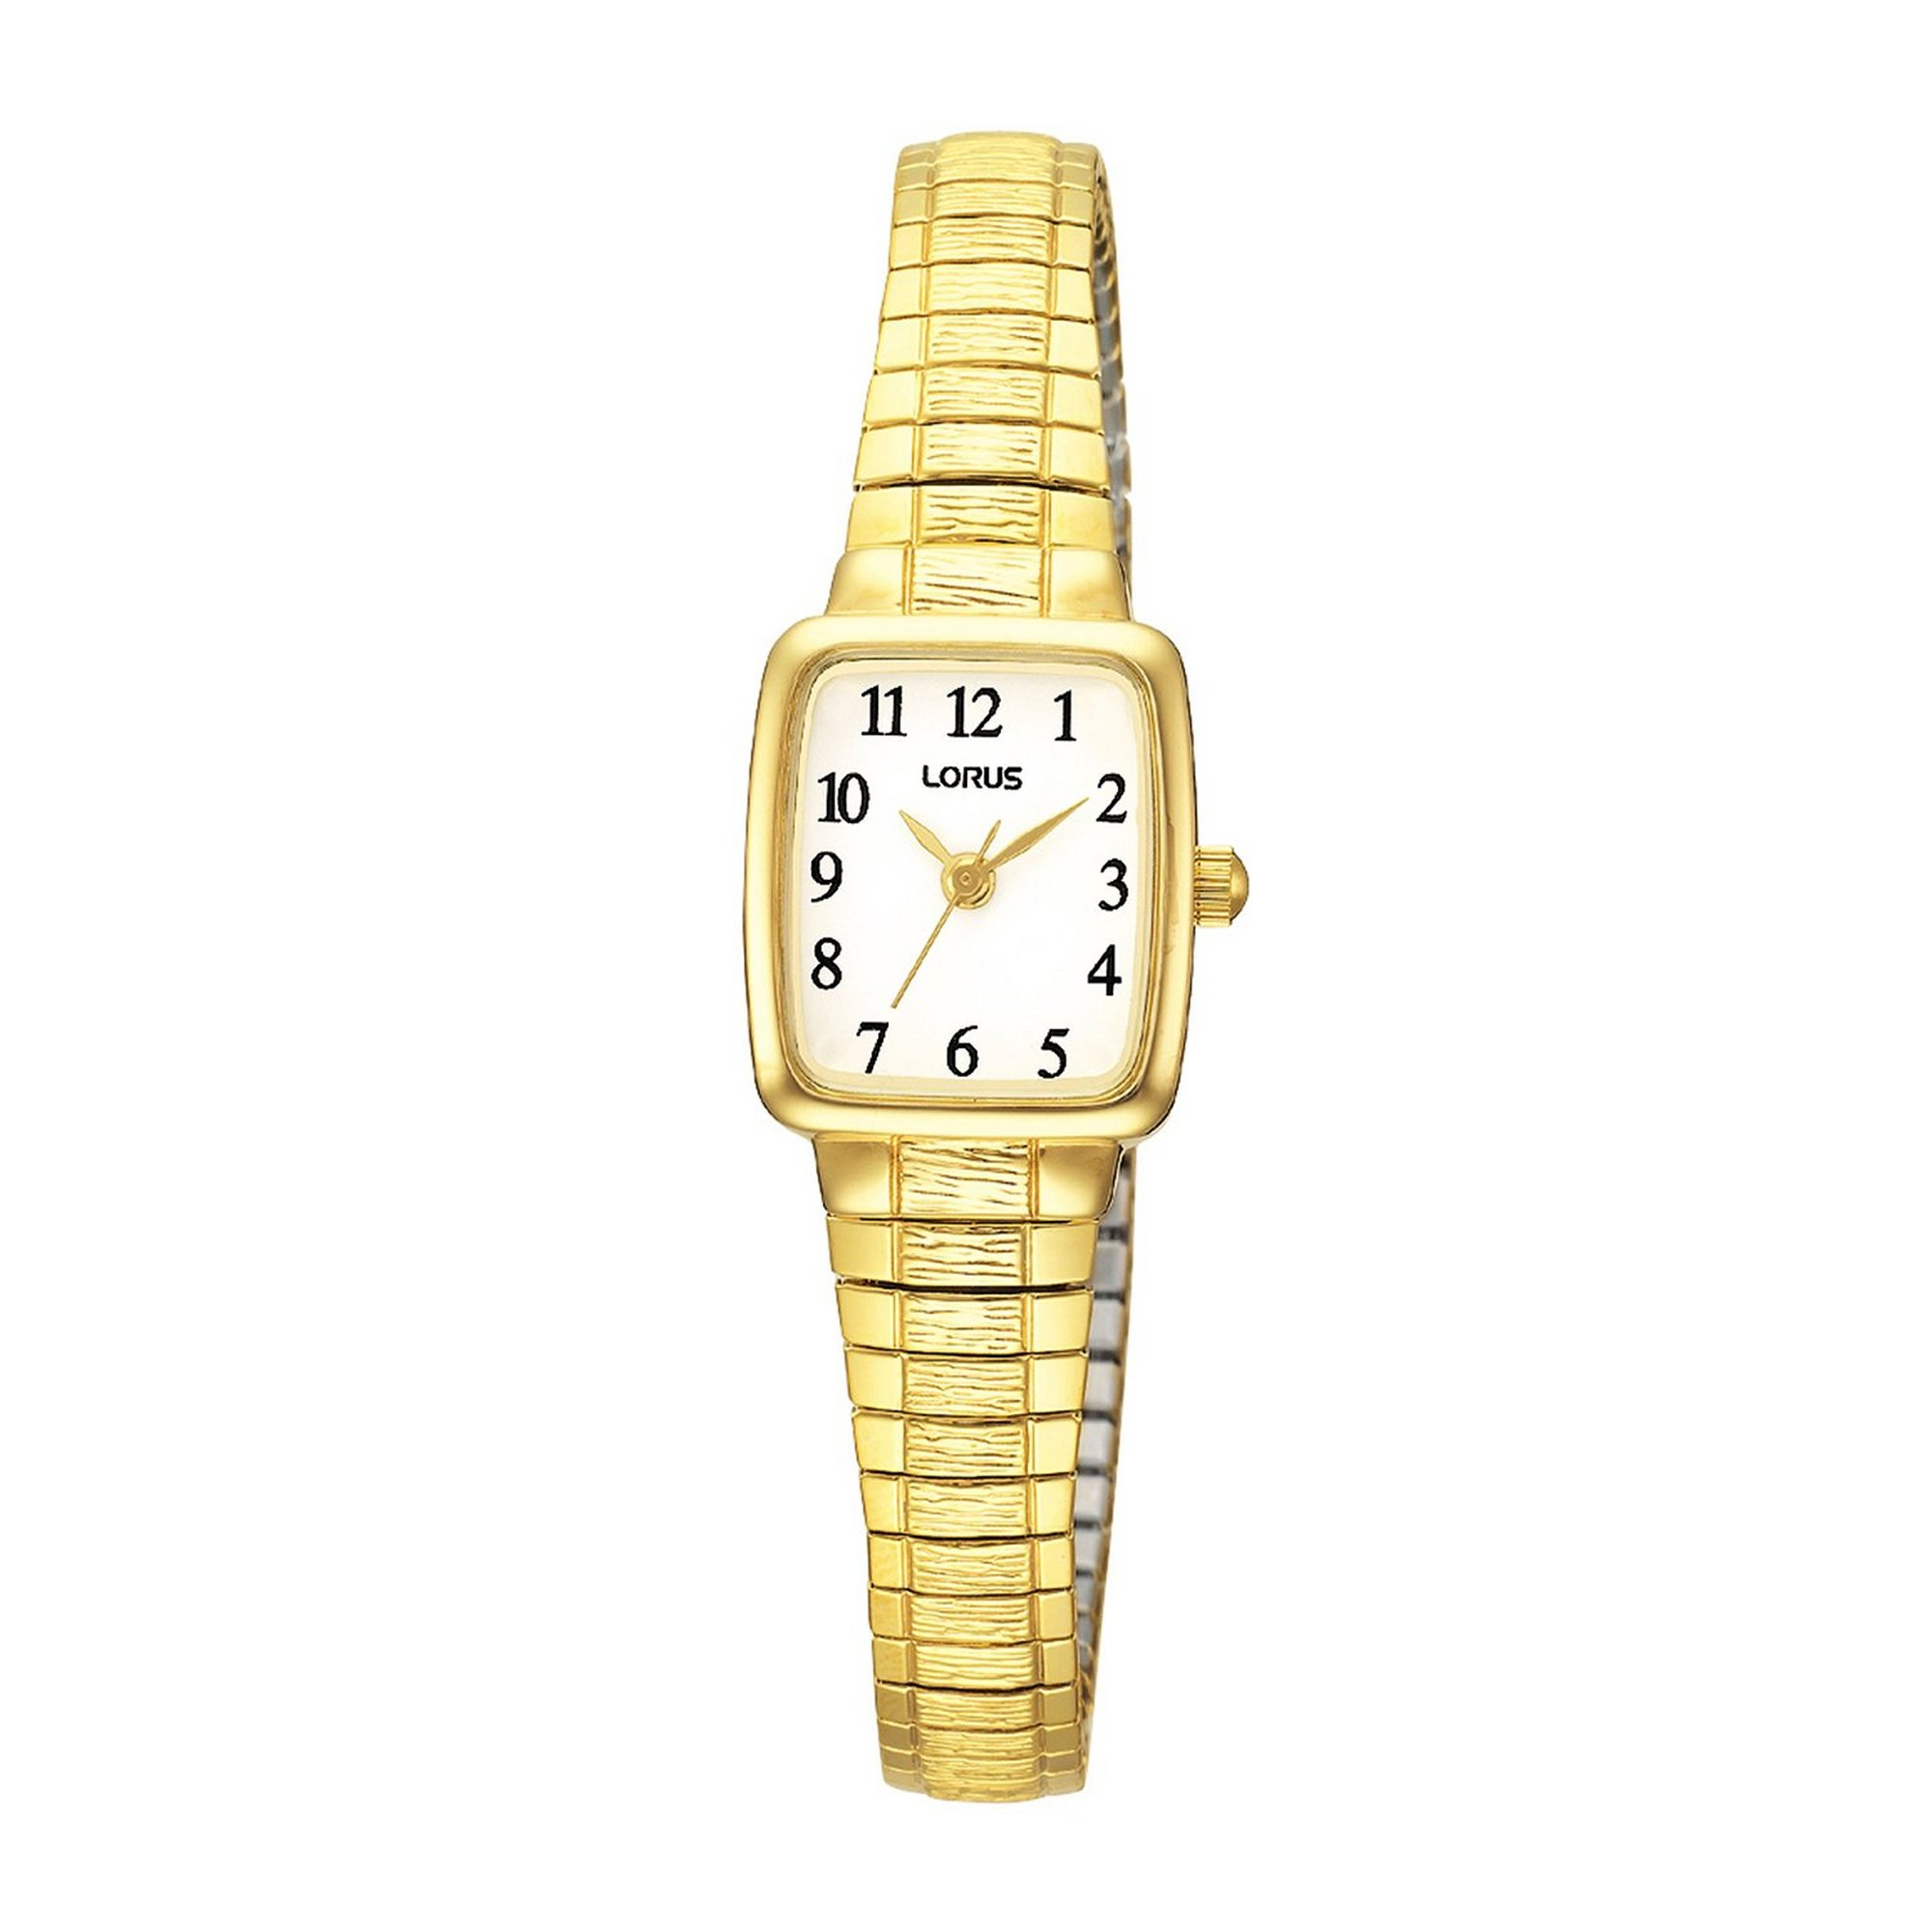 Image of Lorus Gold Plated Expanding Bracelet Watch with Square Face